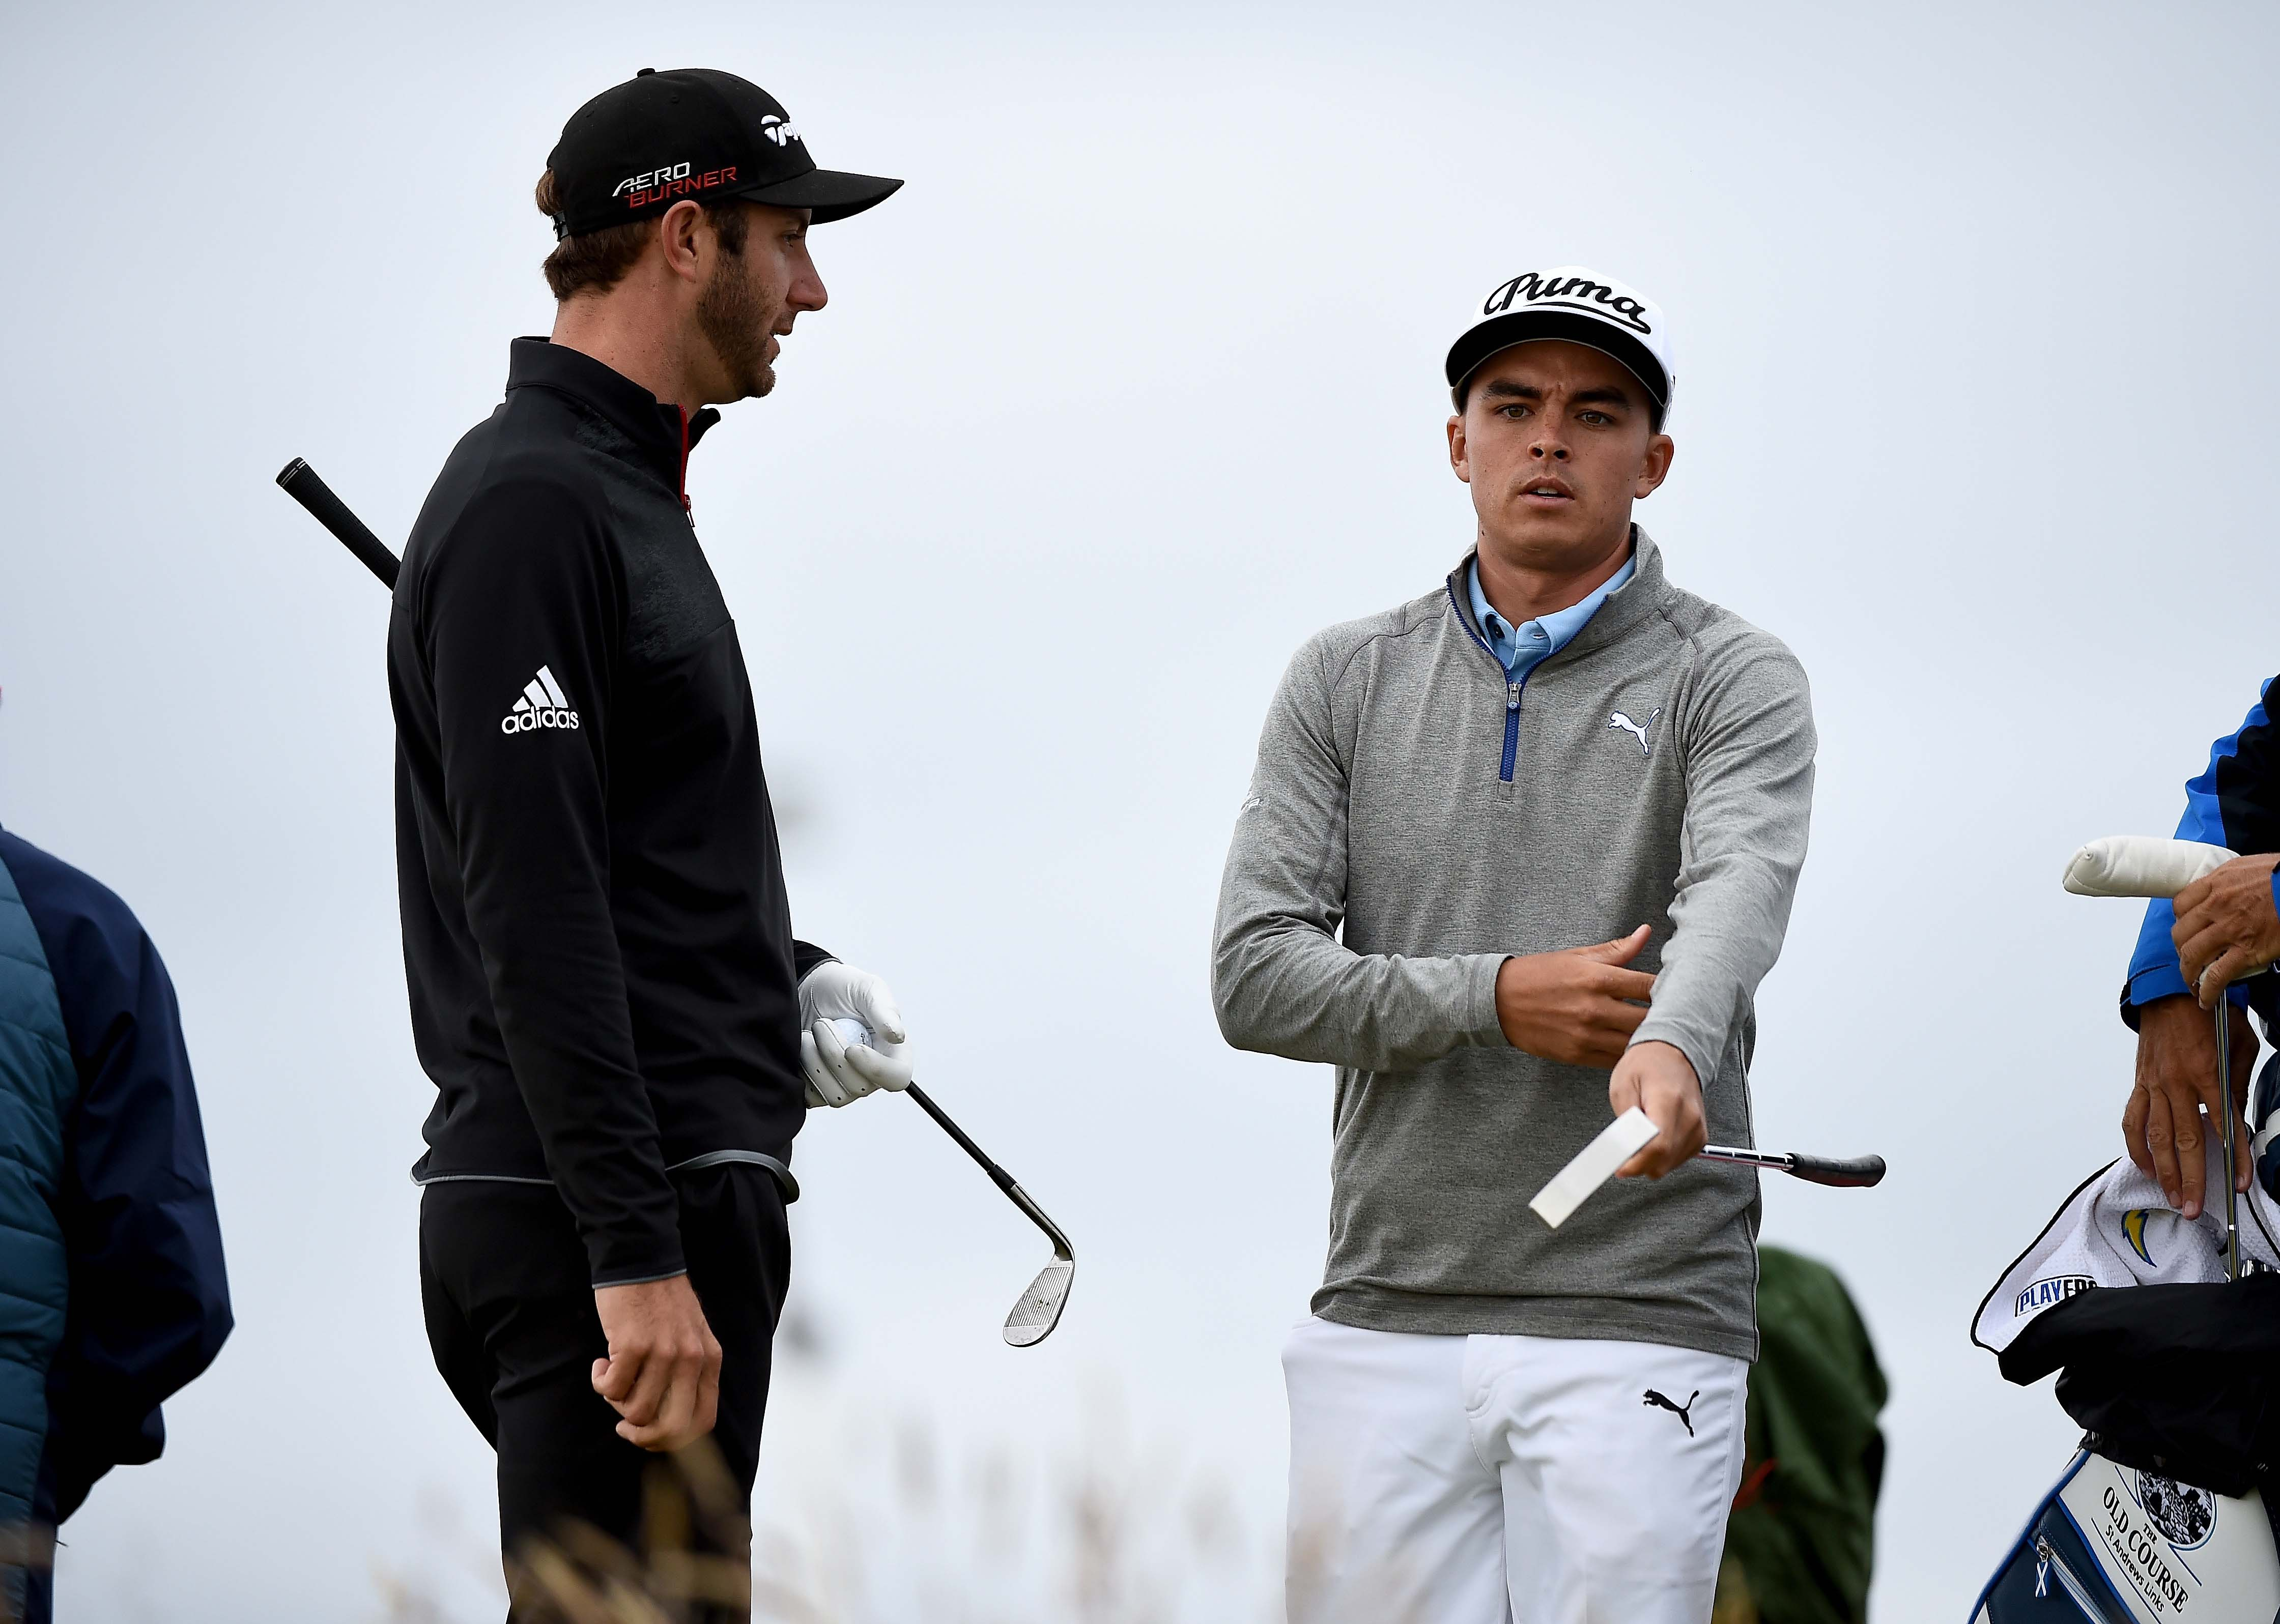 Dustin Johnson and Rickie Fowler